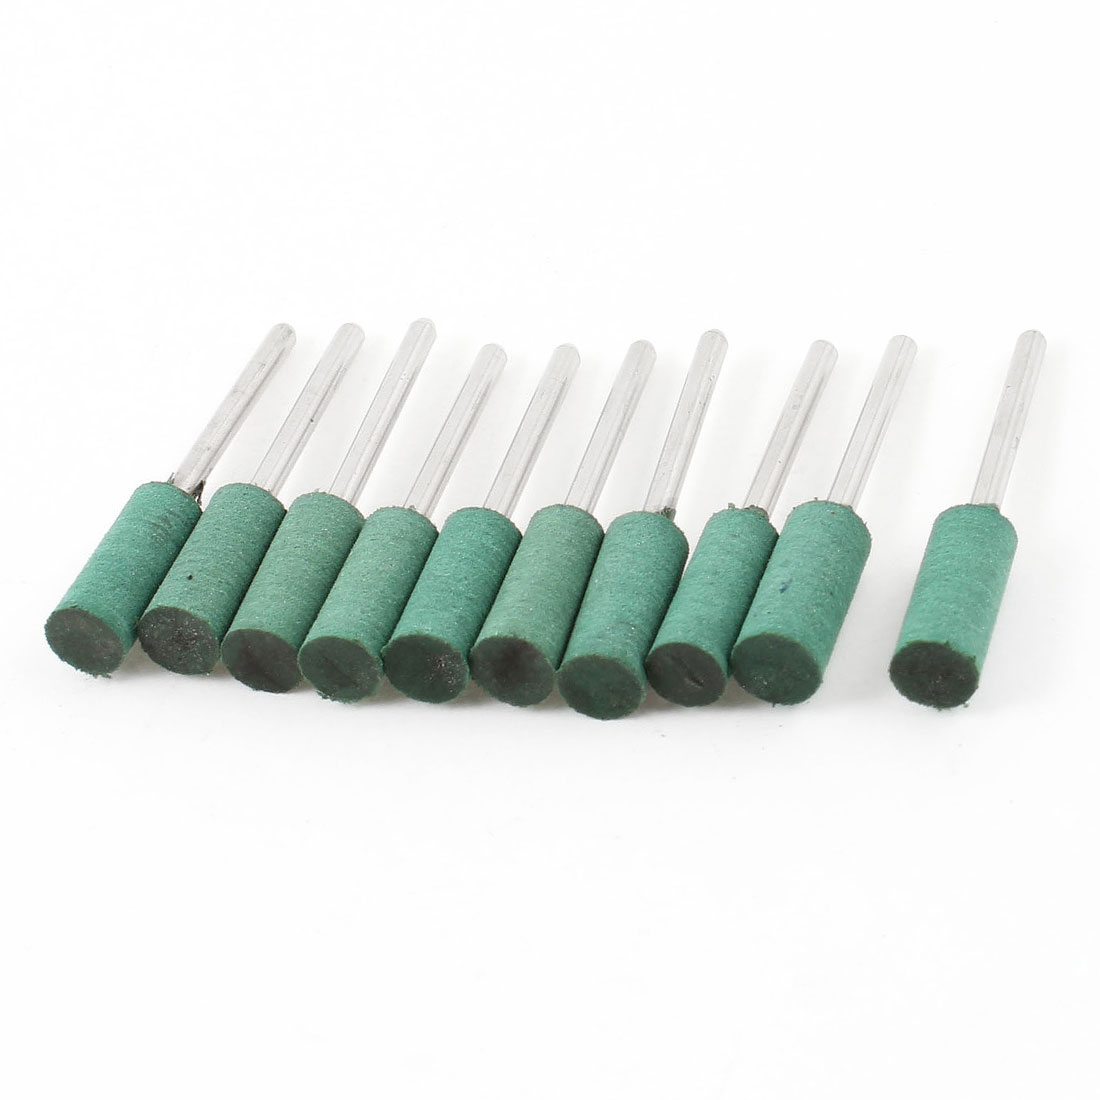 10 Pcs Cylinder Abrasive Polishing Mounted Point Green 8mm x 18mm x 3mm